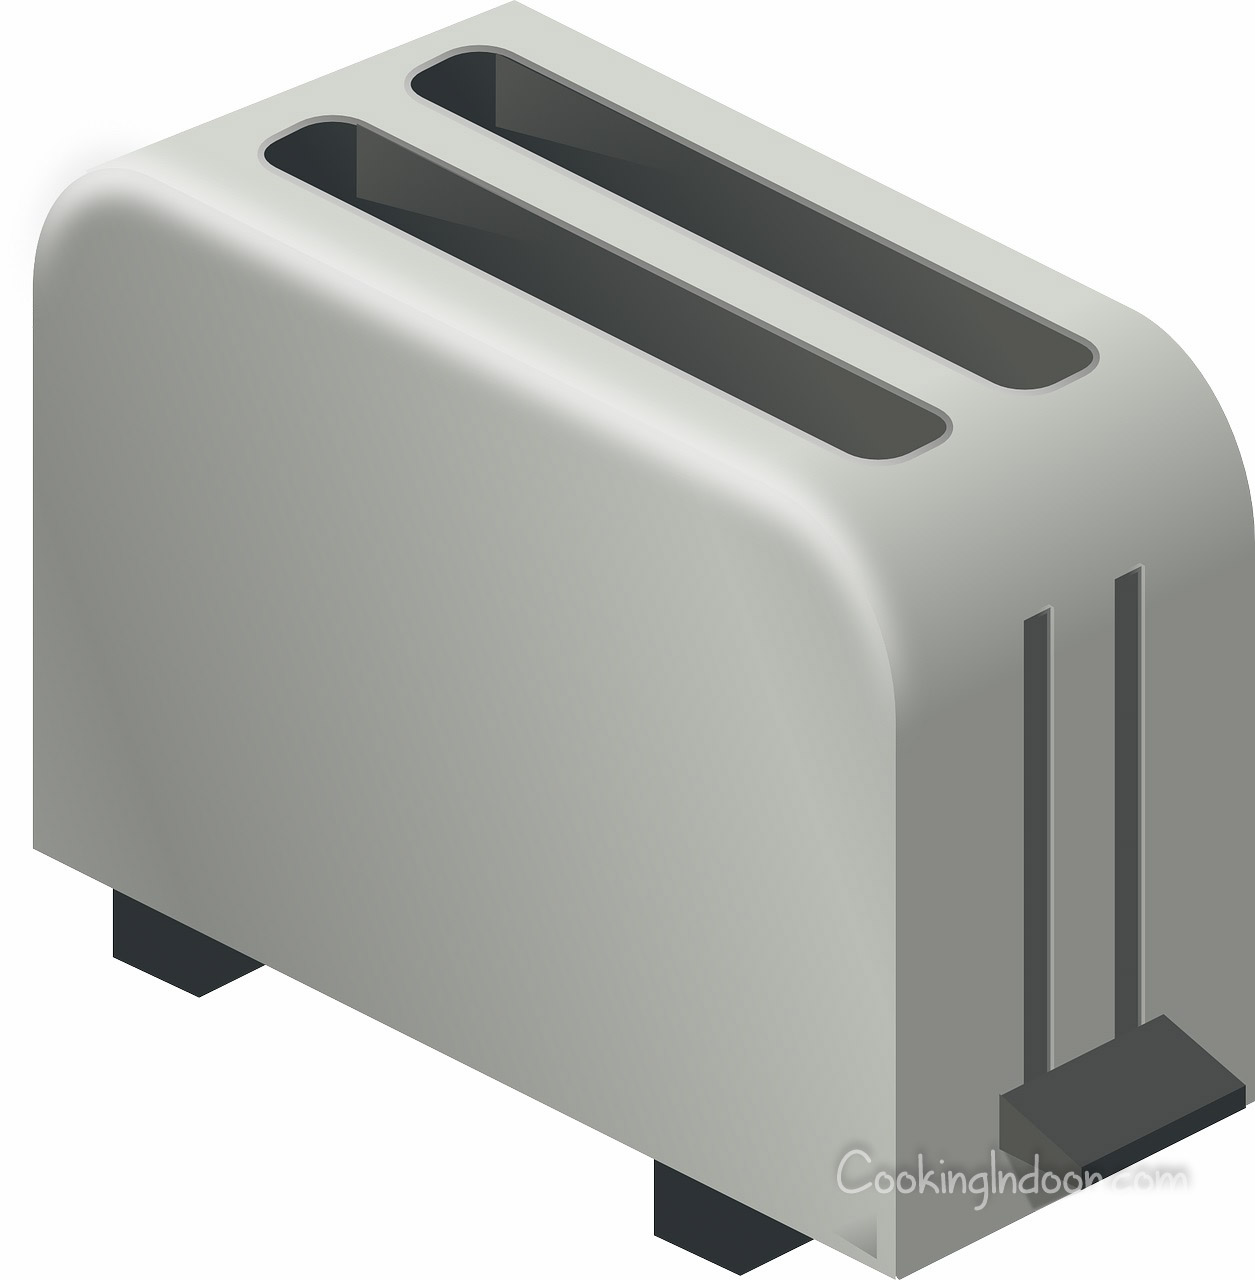 Toaster Oven Vs Regular Toaster Which Is More Efficient